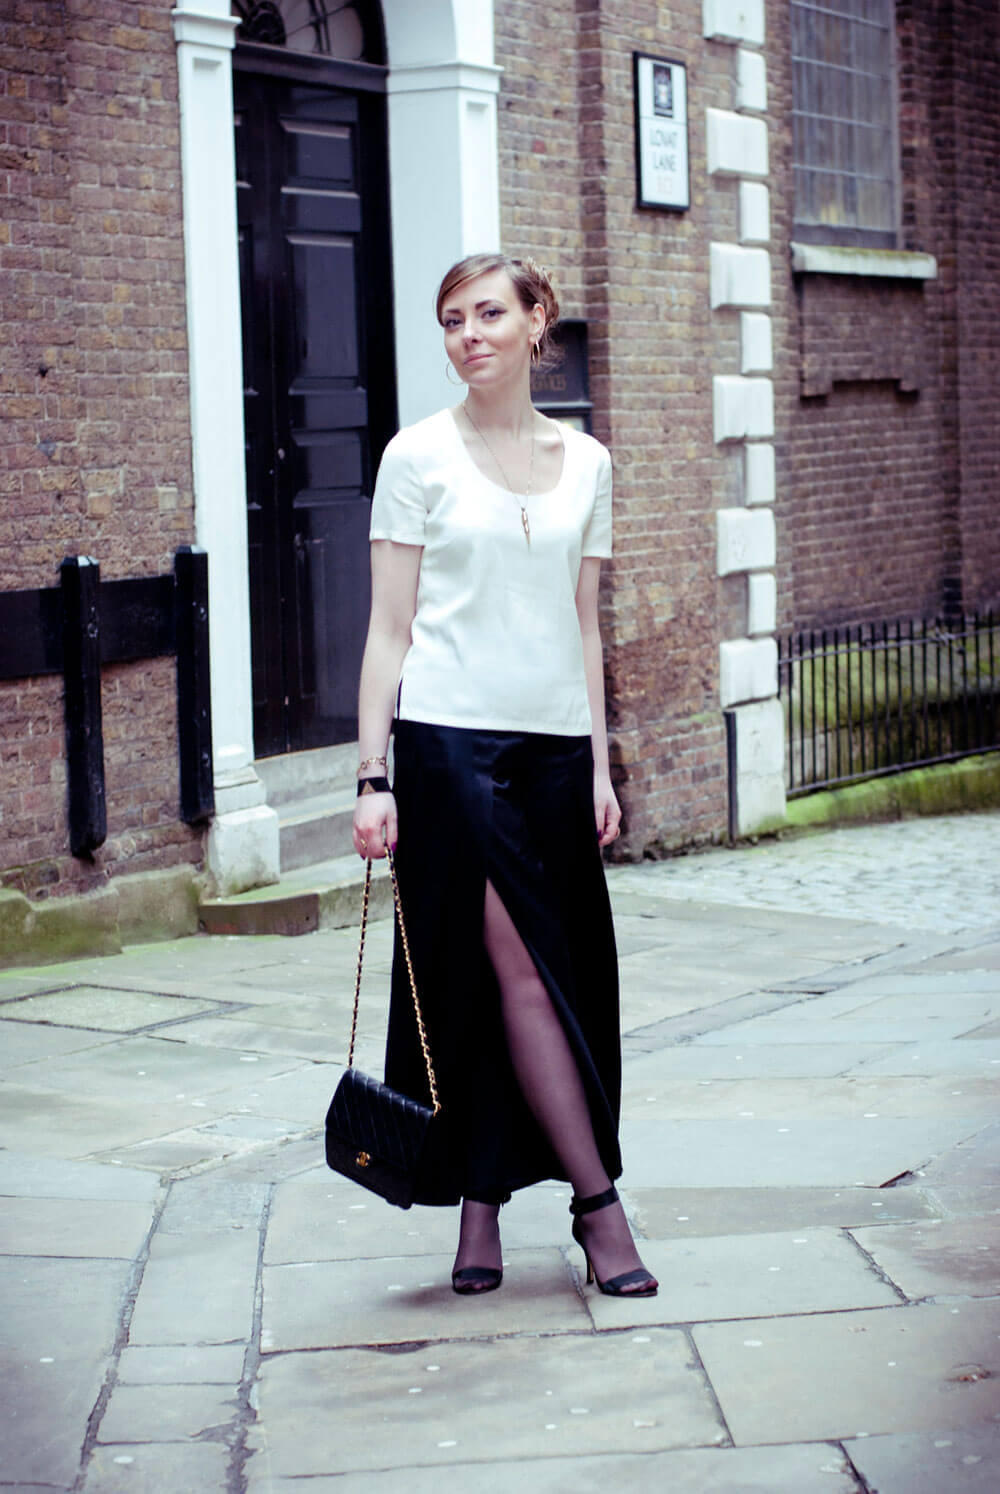 Edita in Stella McCartney trousers, Sonia Rykiel top, Chanel bag and Walter Steiger shoes, JR cuff 6